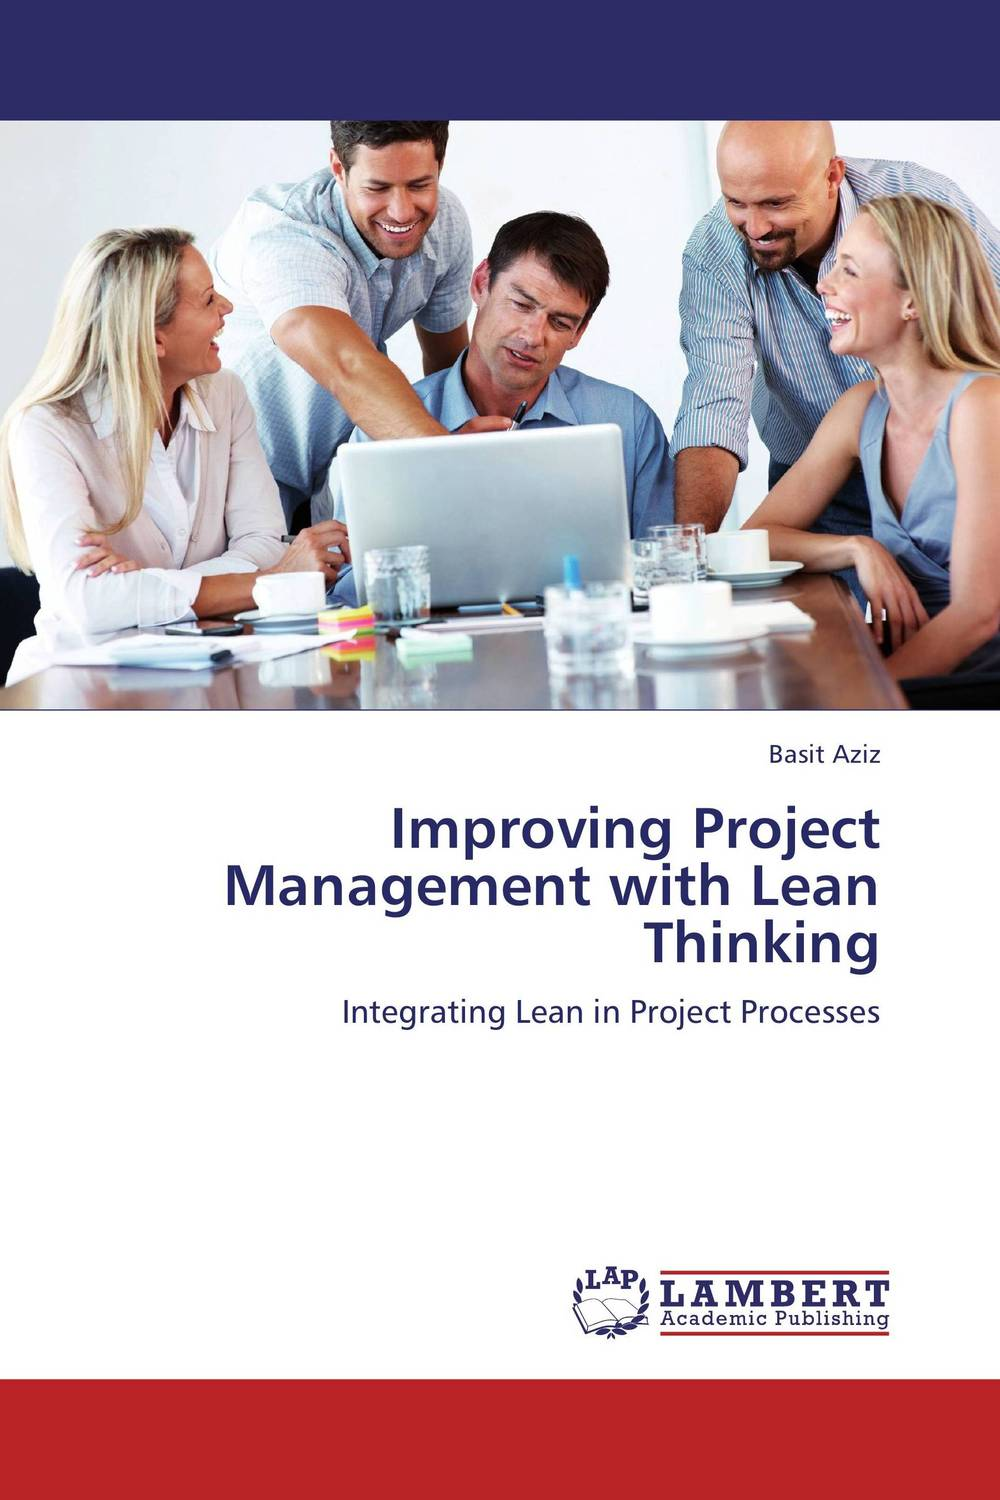 Improving Project Management with Lean Thinking